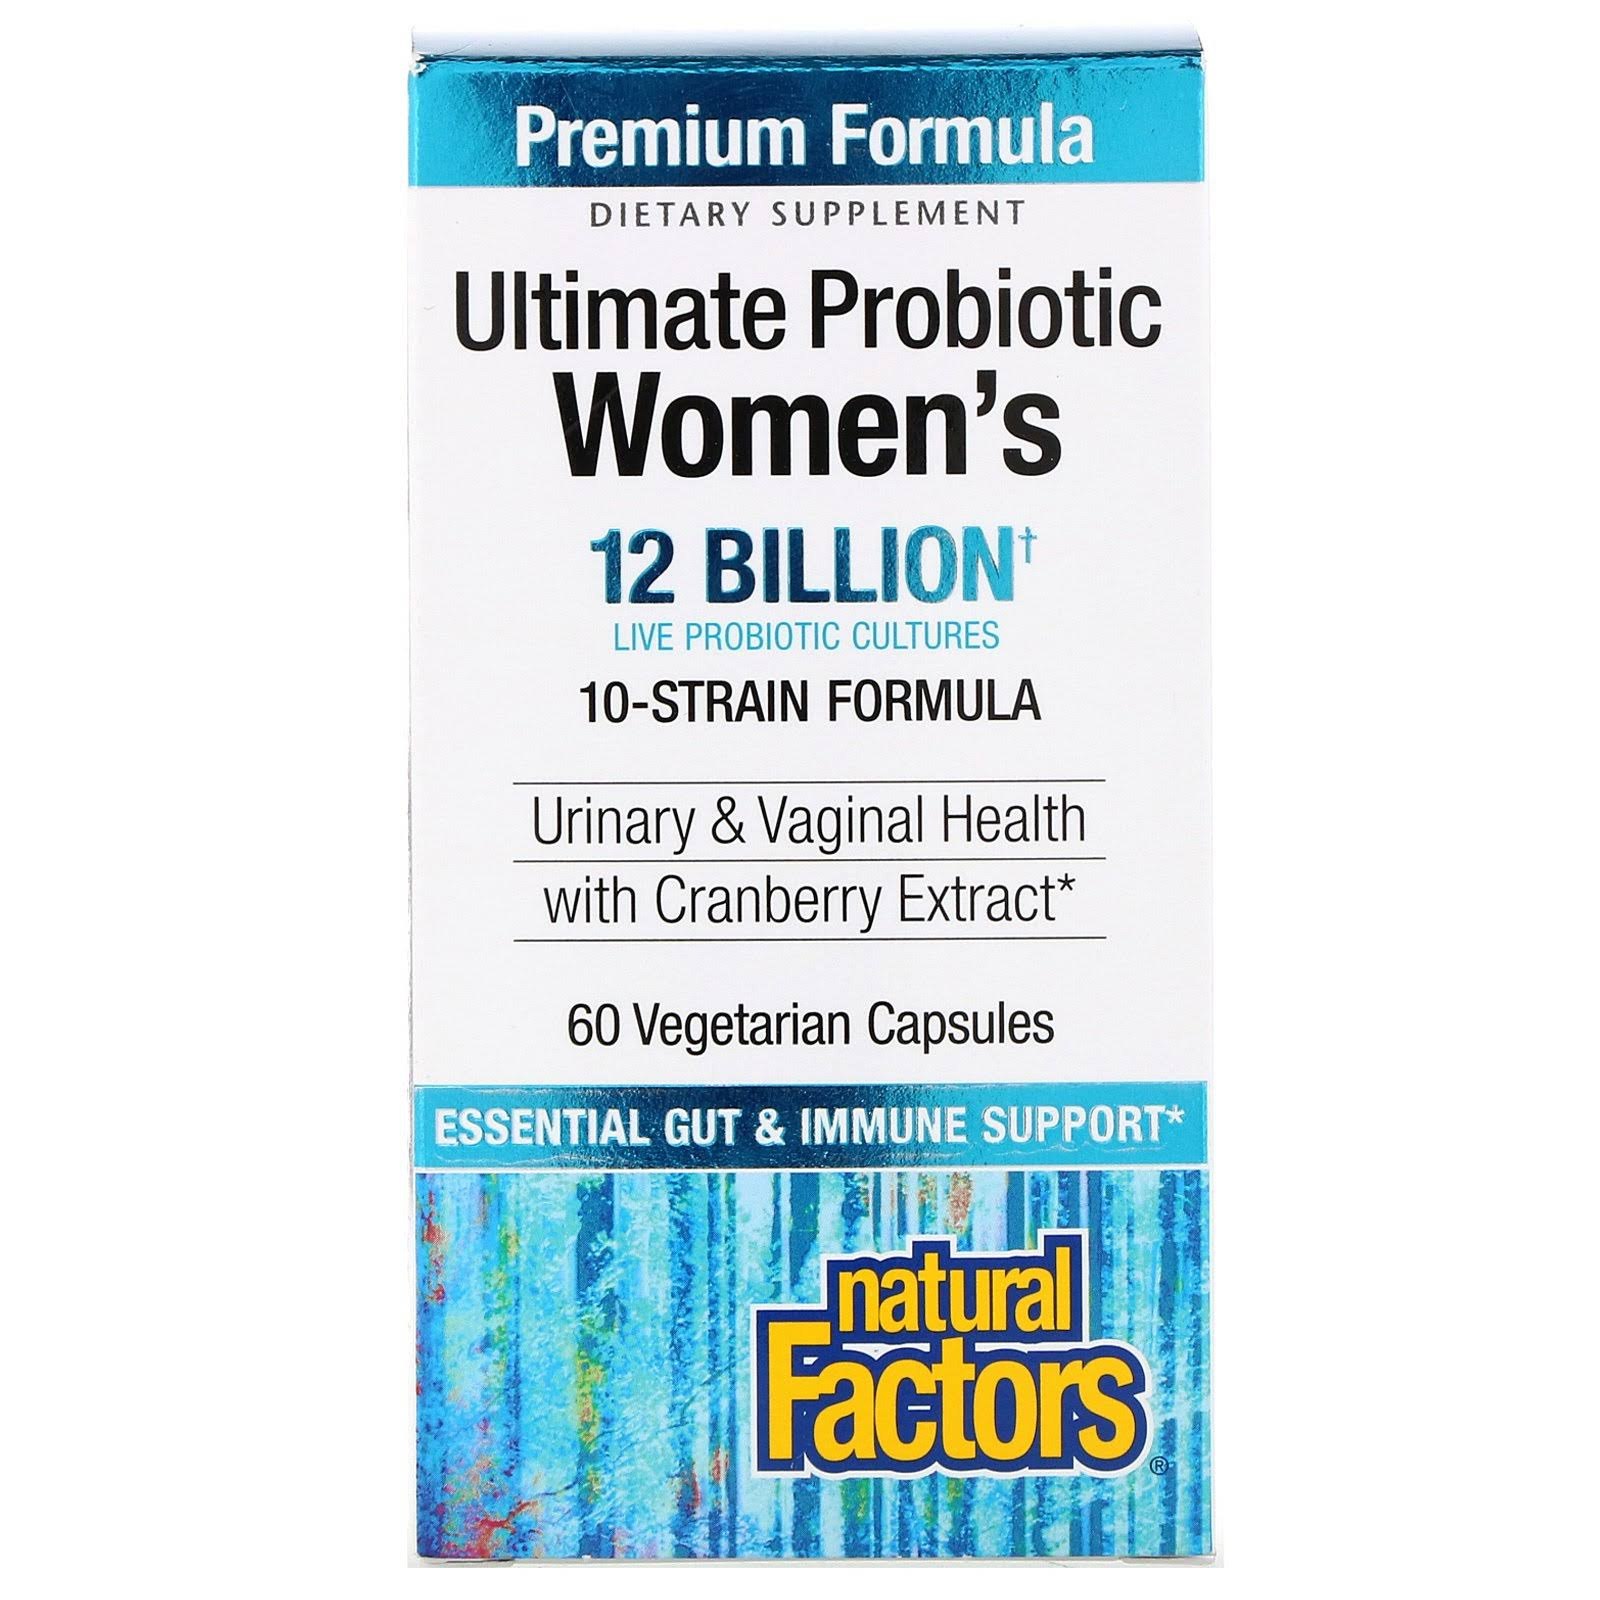 Natural Factors Ultimate Probiotic Women's Formula - 60 Capsules